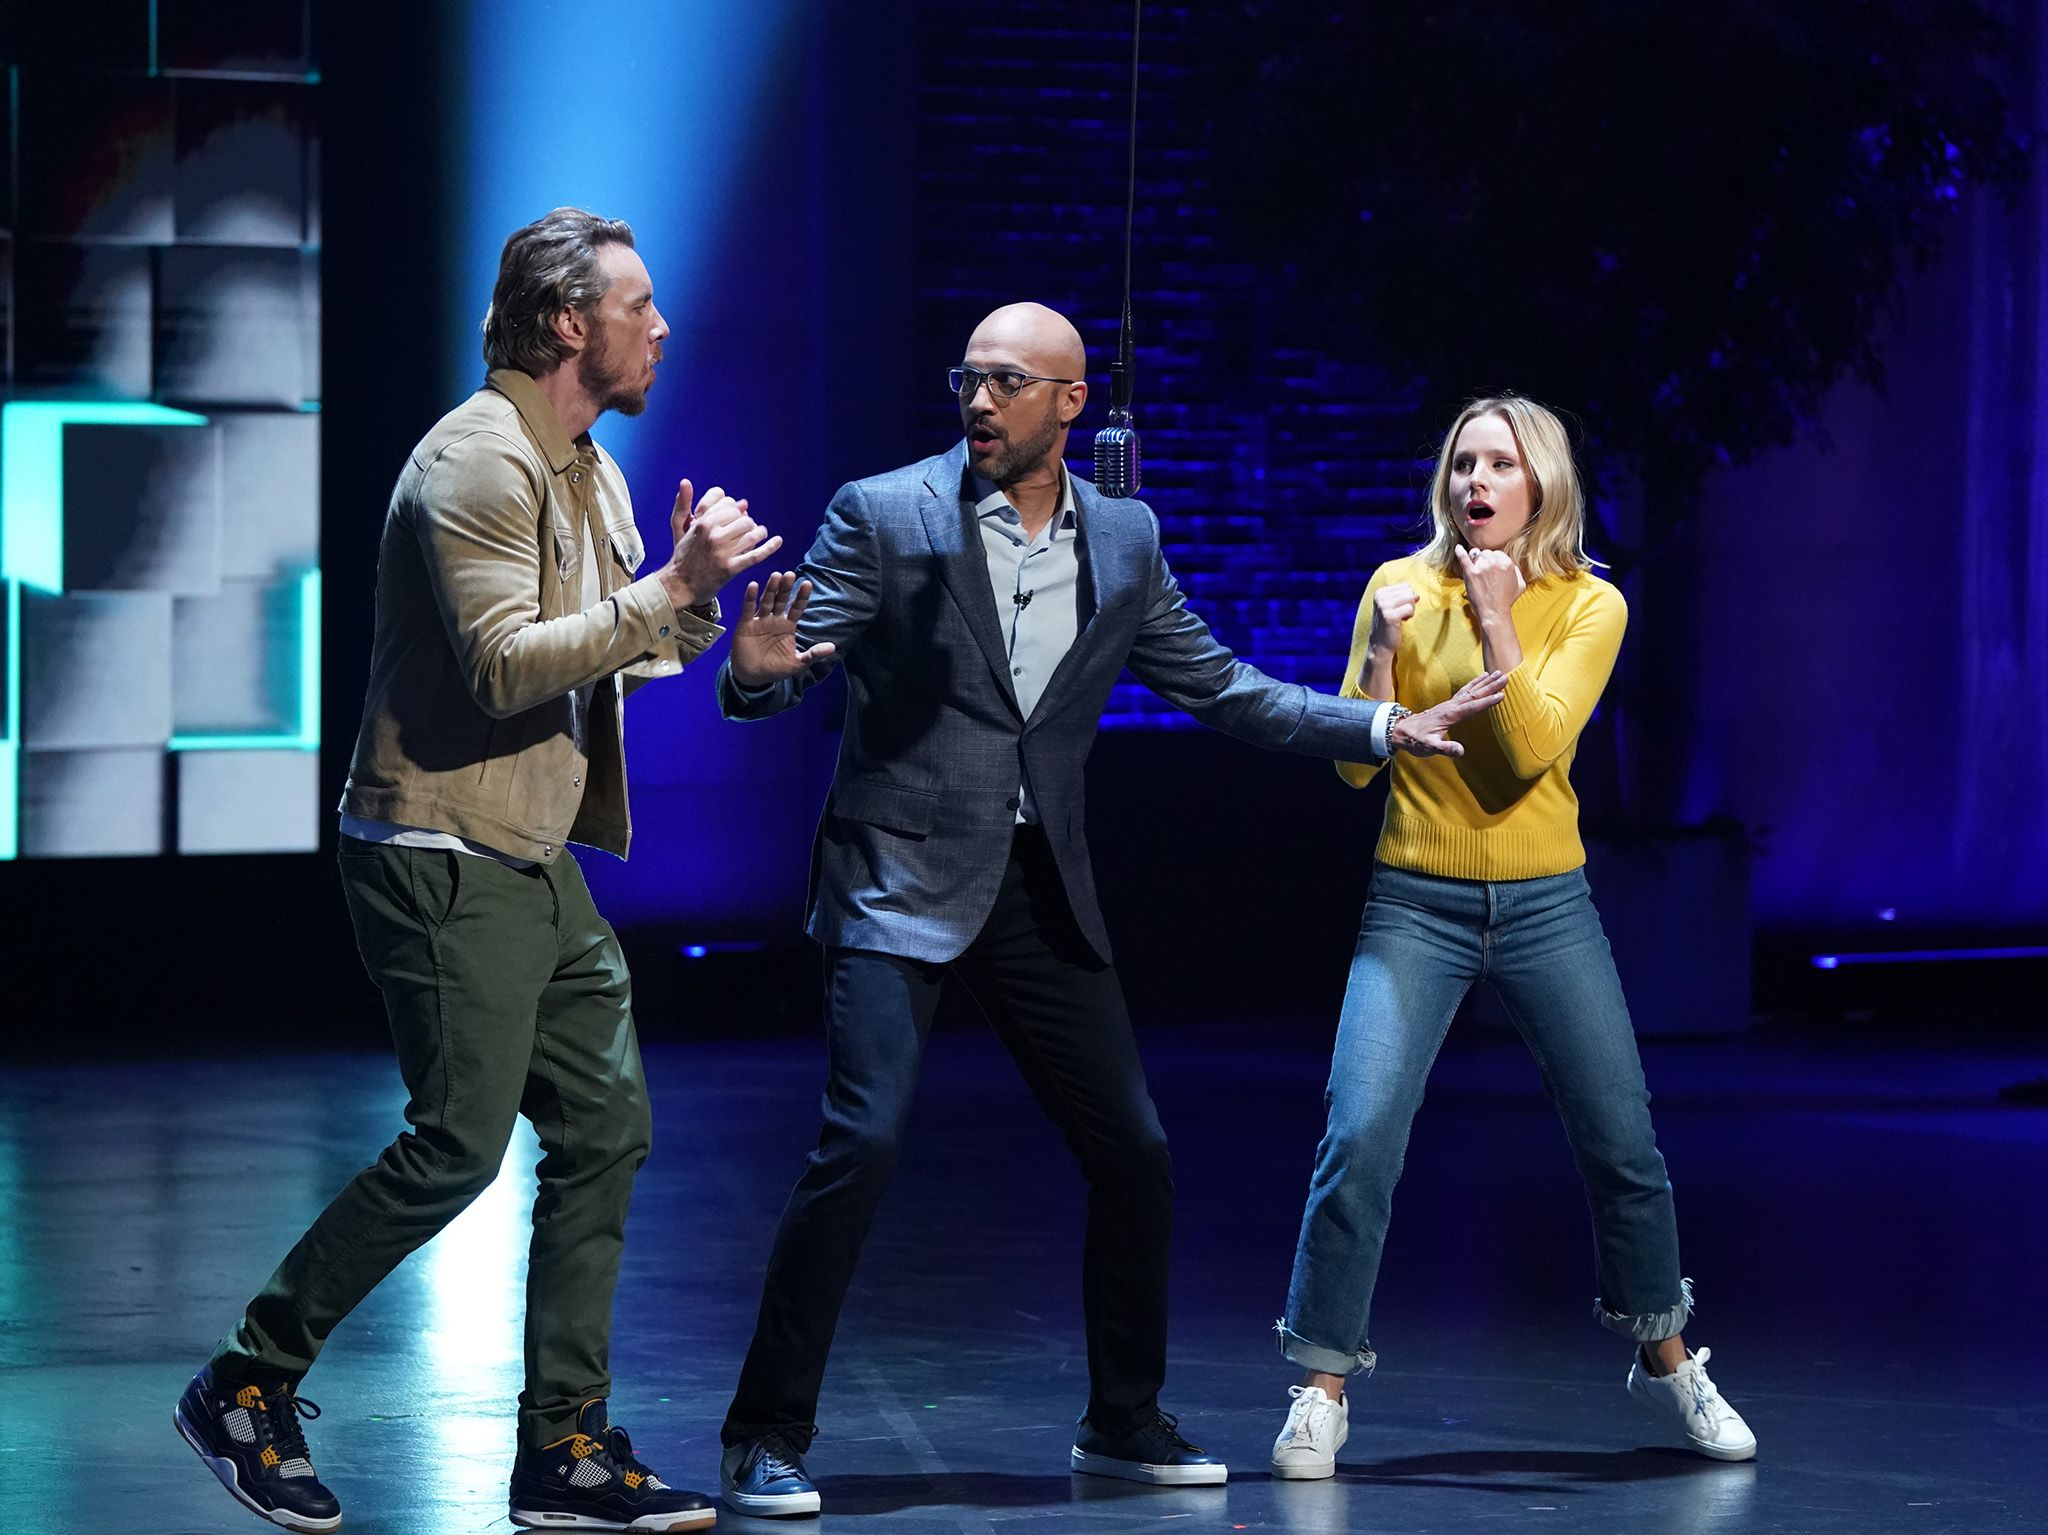 Guests Kristen Bell and Dax Shepard on the set of Brain Games with host Keegan-Michael Key. ... [Photo of the day - January 2020]